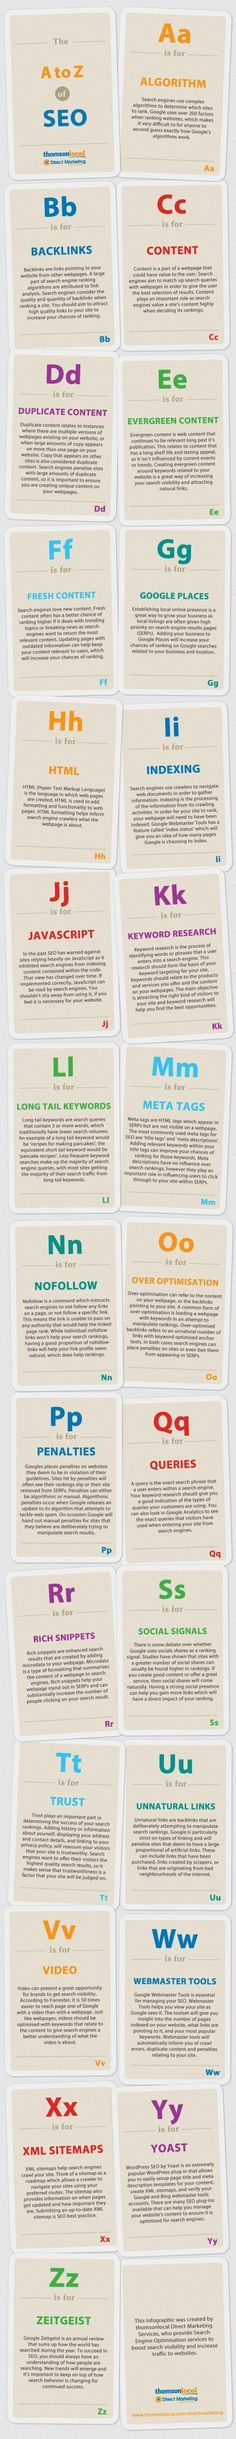 The A to Z of #SEO. Do you find yourself struggling to understand what SEO (or Search Engine Optimisation) is? If so, this really helpful infographic will help you to understand the basics of SEO and what all the terms and techniques mean.#infographic